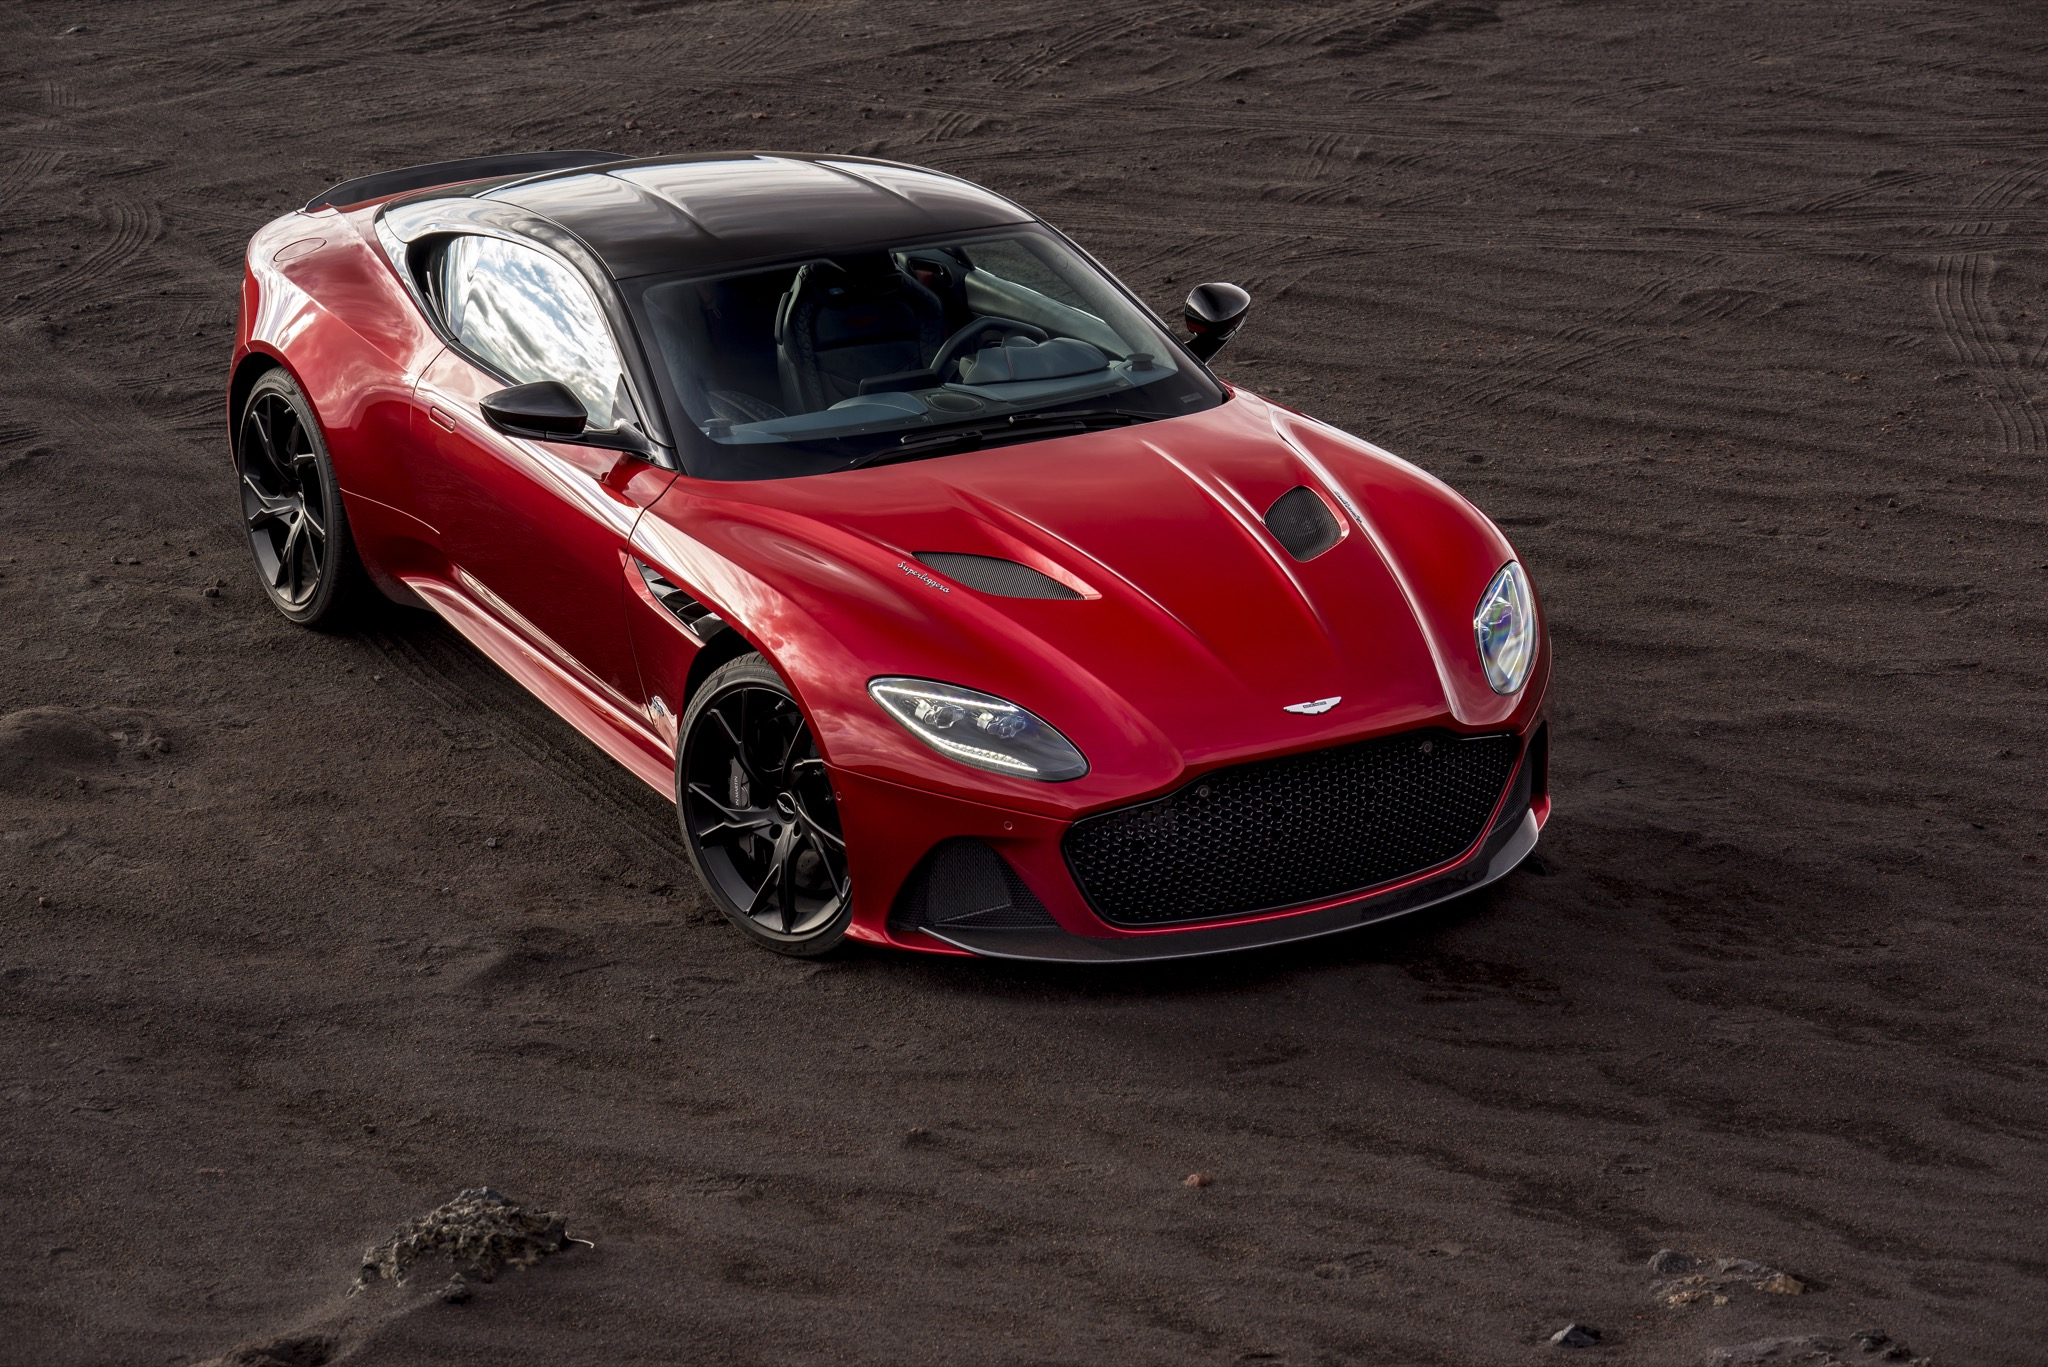 725 ps aus england: der aston martin dbs superleggera